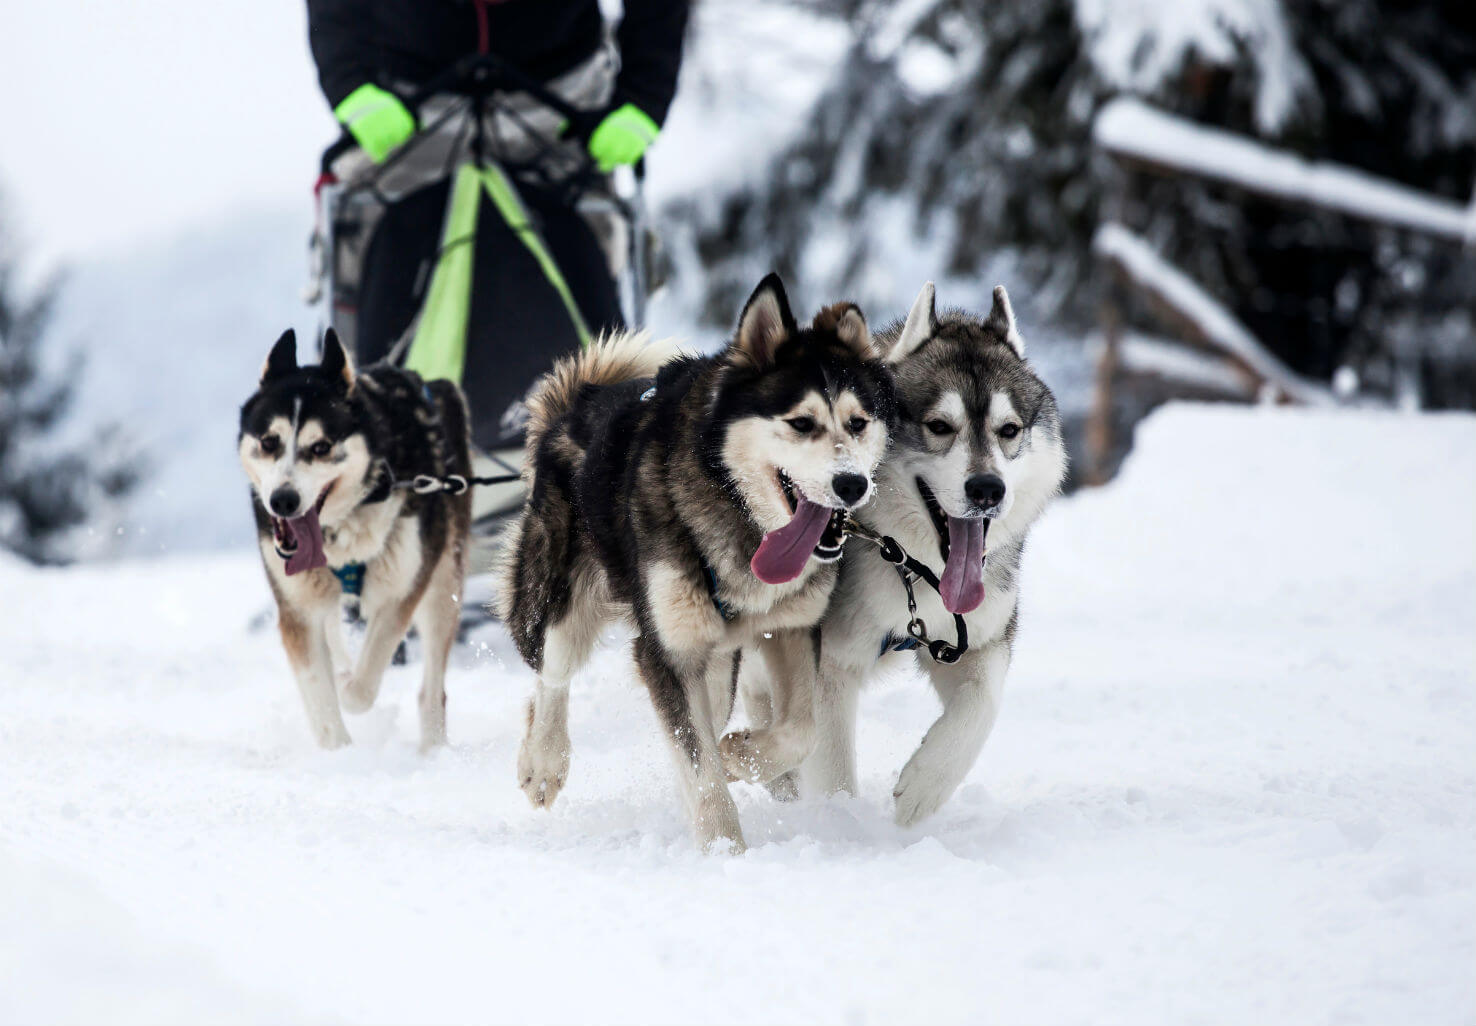 Energetic husky dogs pull dog sled